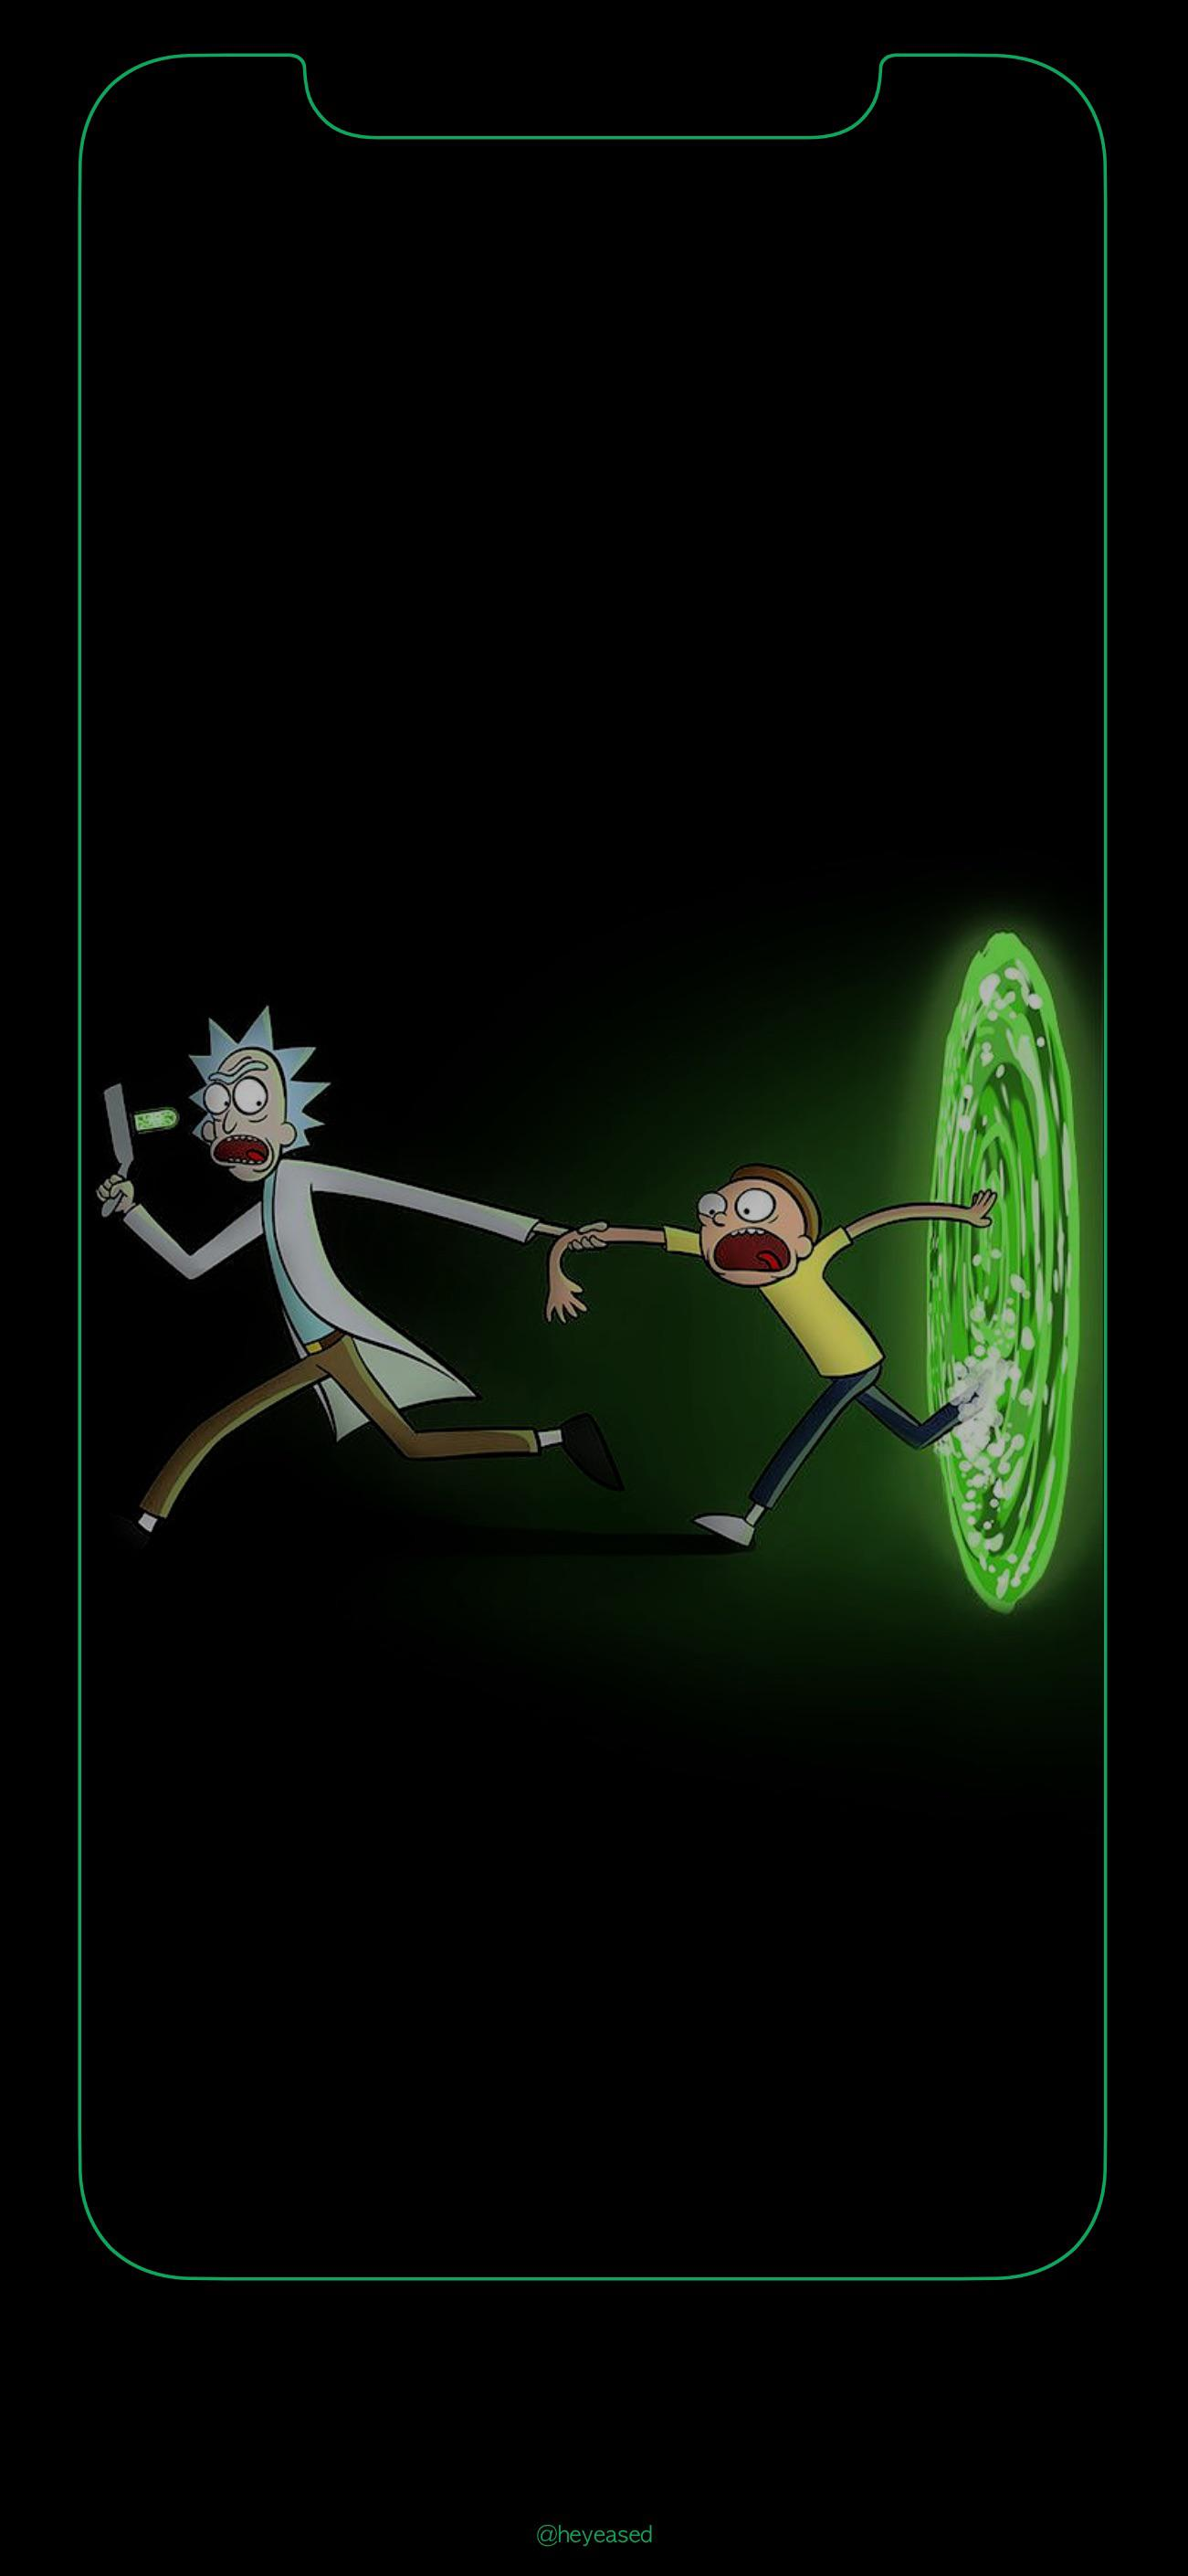 Rick And Morty Wallpaper Iphone X : morty, wallpaper, iphone, IPhone, Wallpaper, Rickandmorty